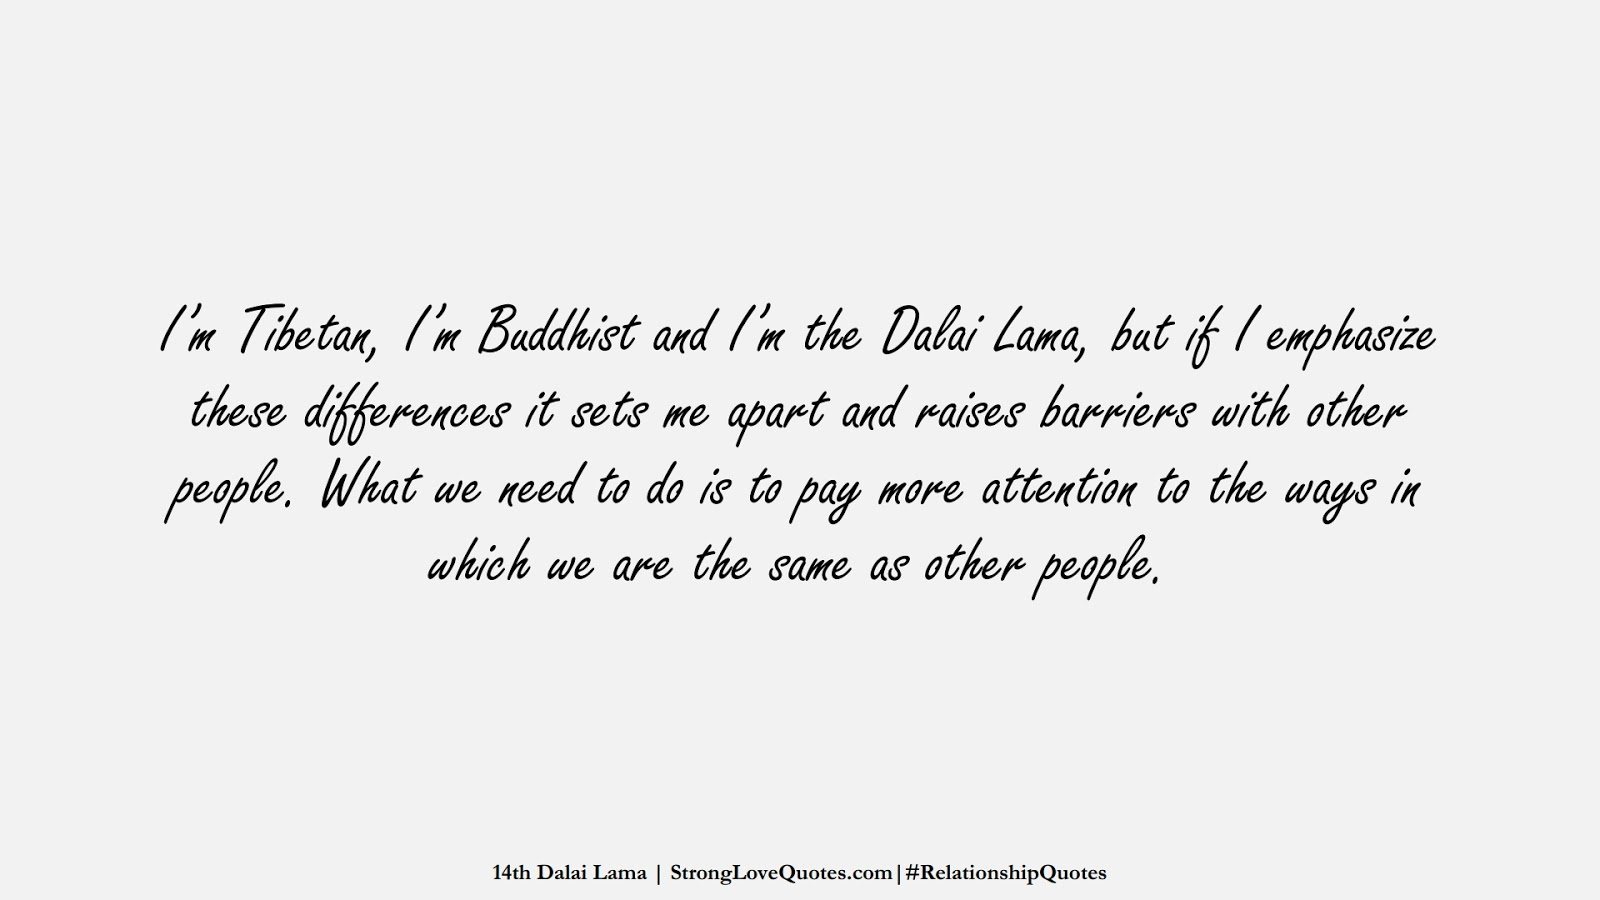 I'm Tibetan, I'm Buddhist and I'm the Dalai Lama, but if I emphasize these differences it sets me apart and raises barriers with other people. What we need to do is to pay more attention to the ways in which we are the same as other people. (14th Dalai Lama);  #RelationshipQuotes